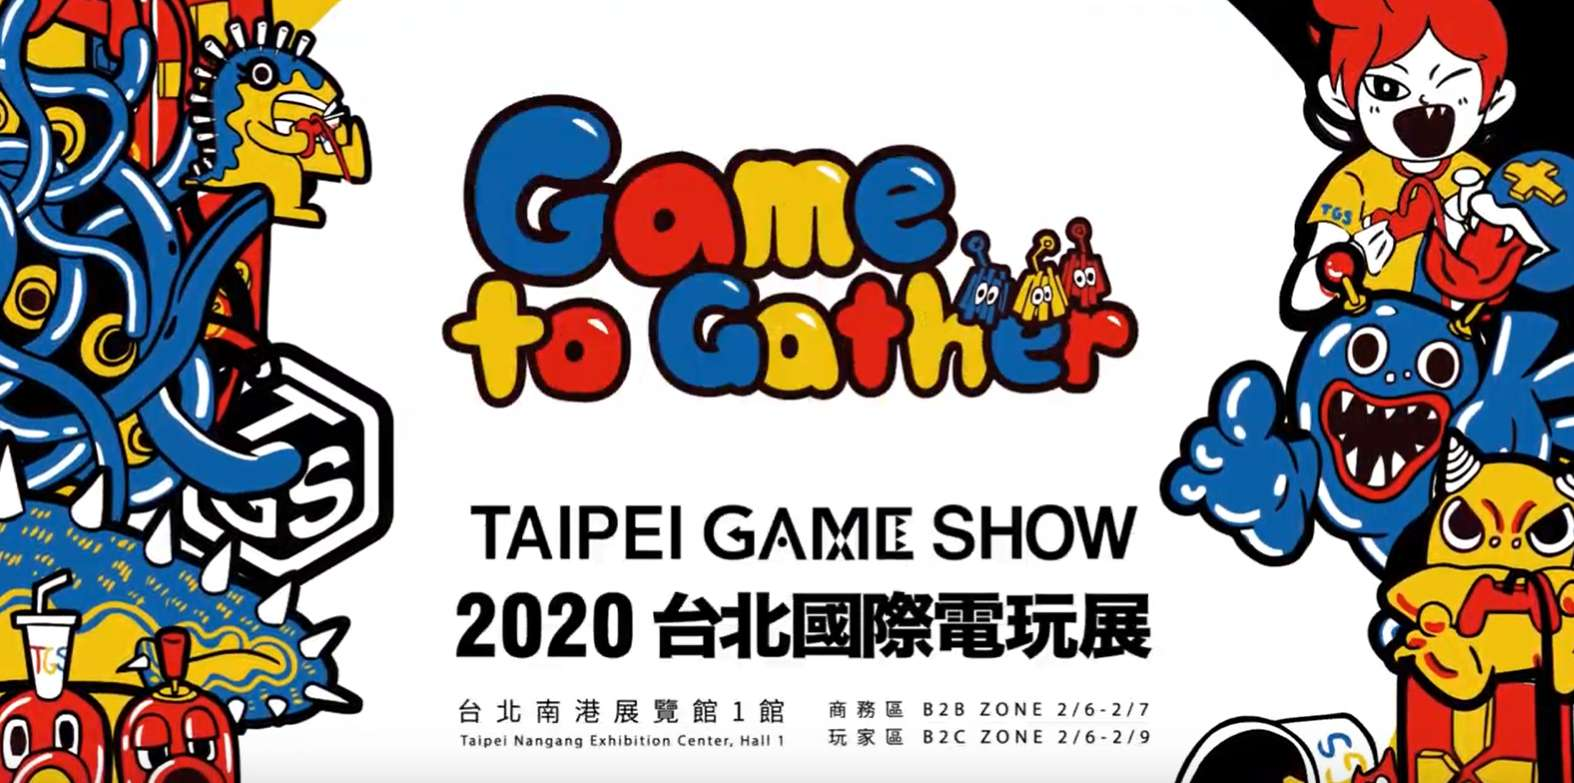 The Taipei Game Show Is Cancelled Amidst Growing Global Concern Over Spread Of The Coronavirus